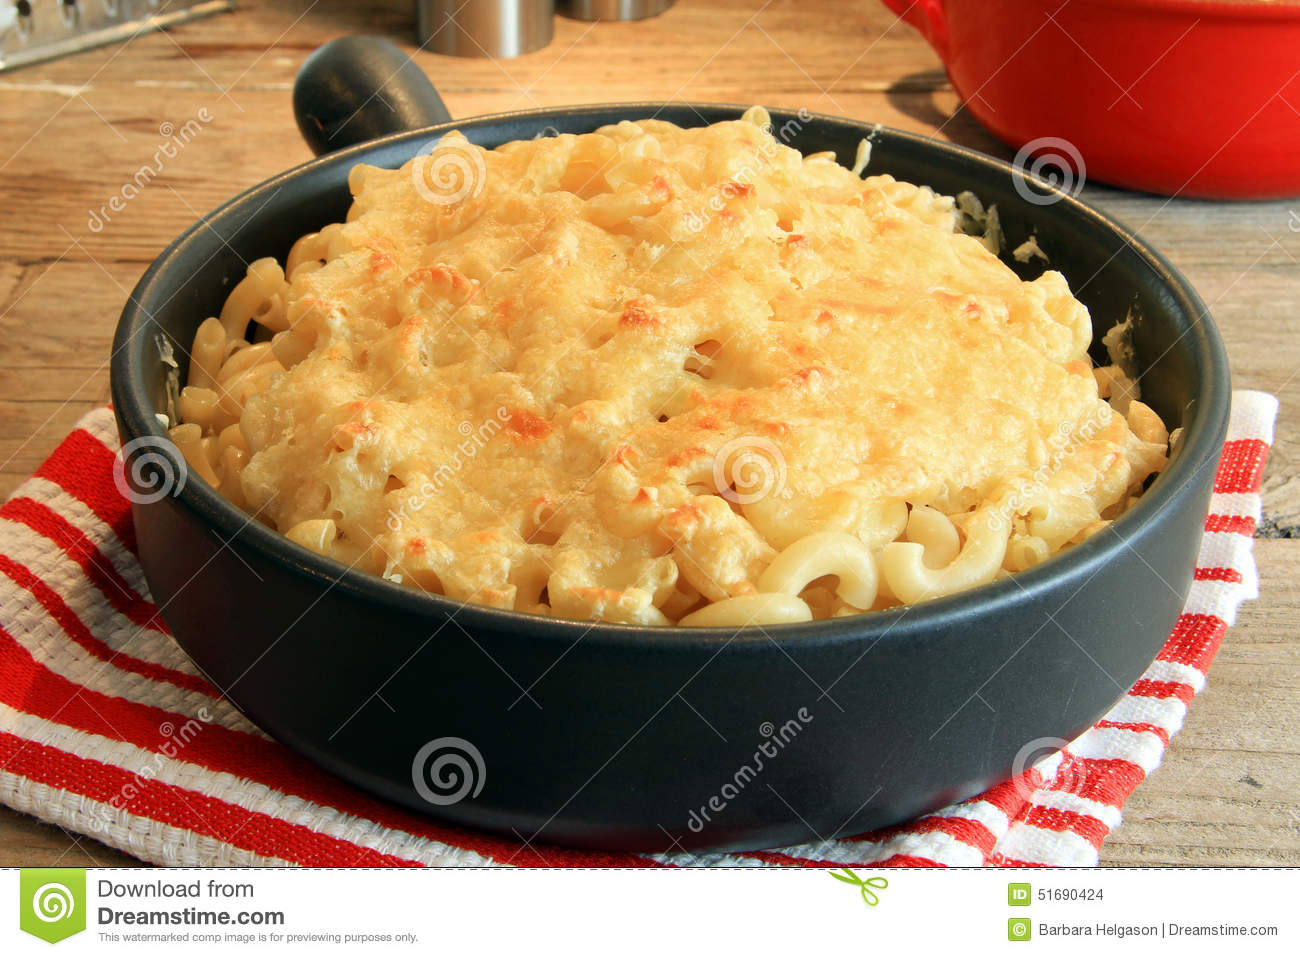 Macaronis au fromage